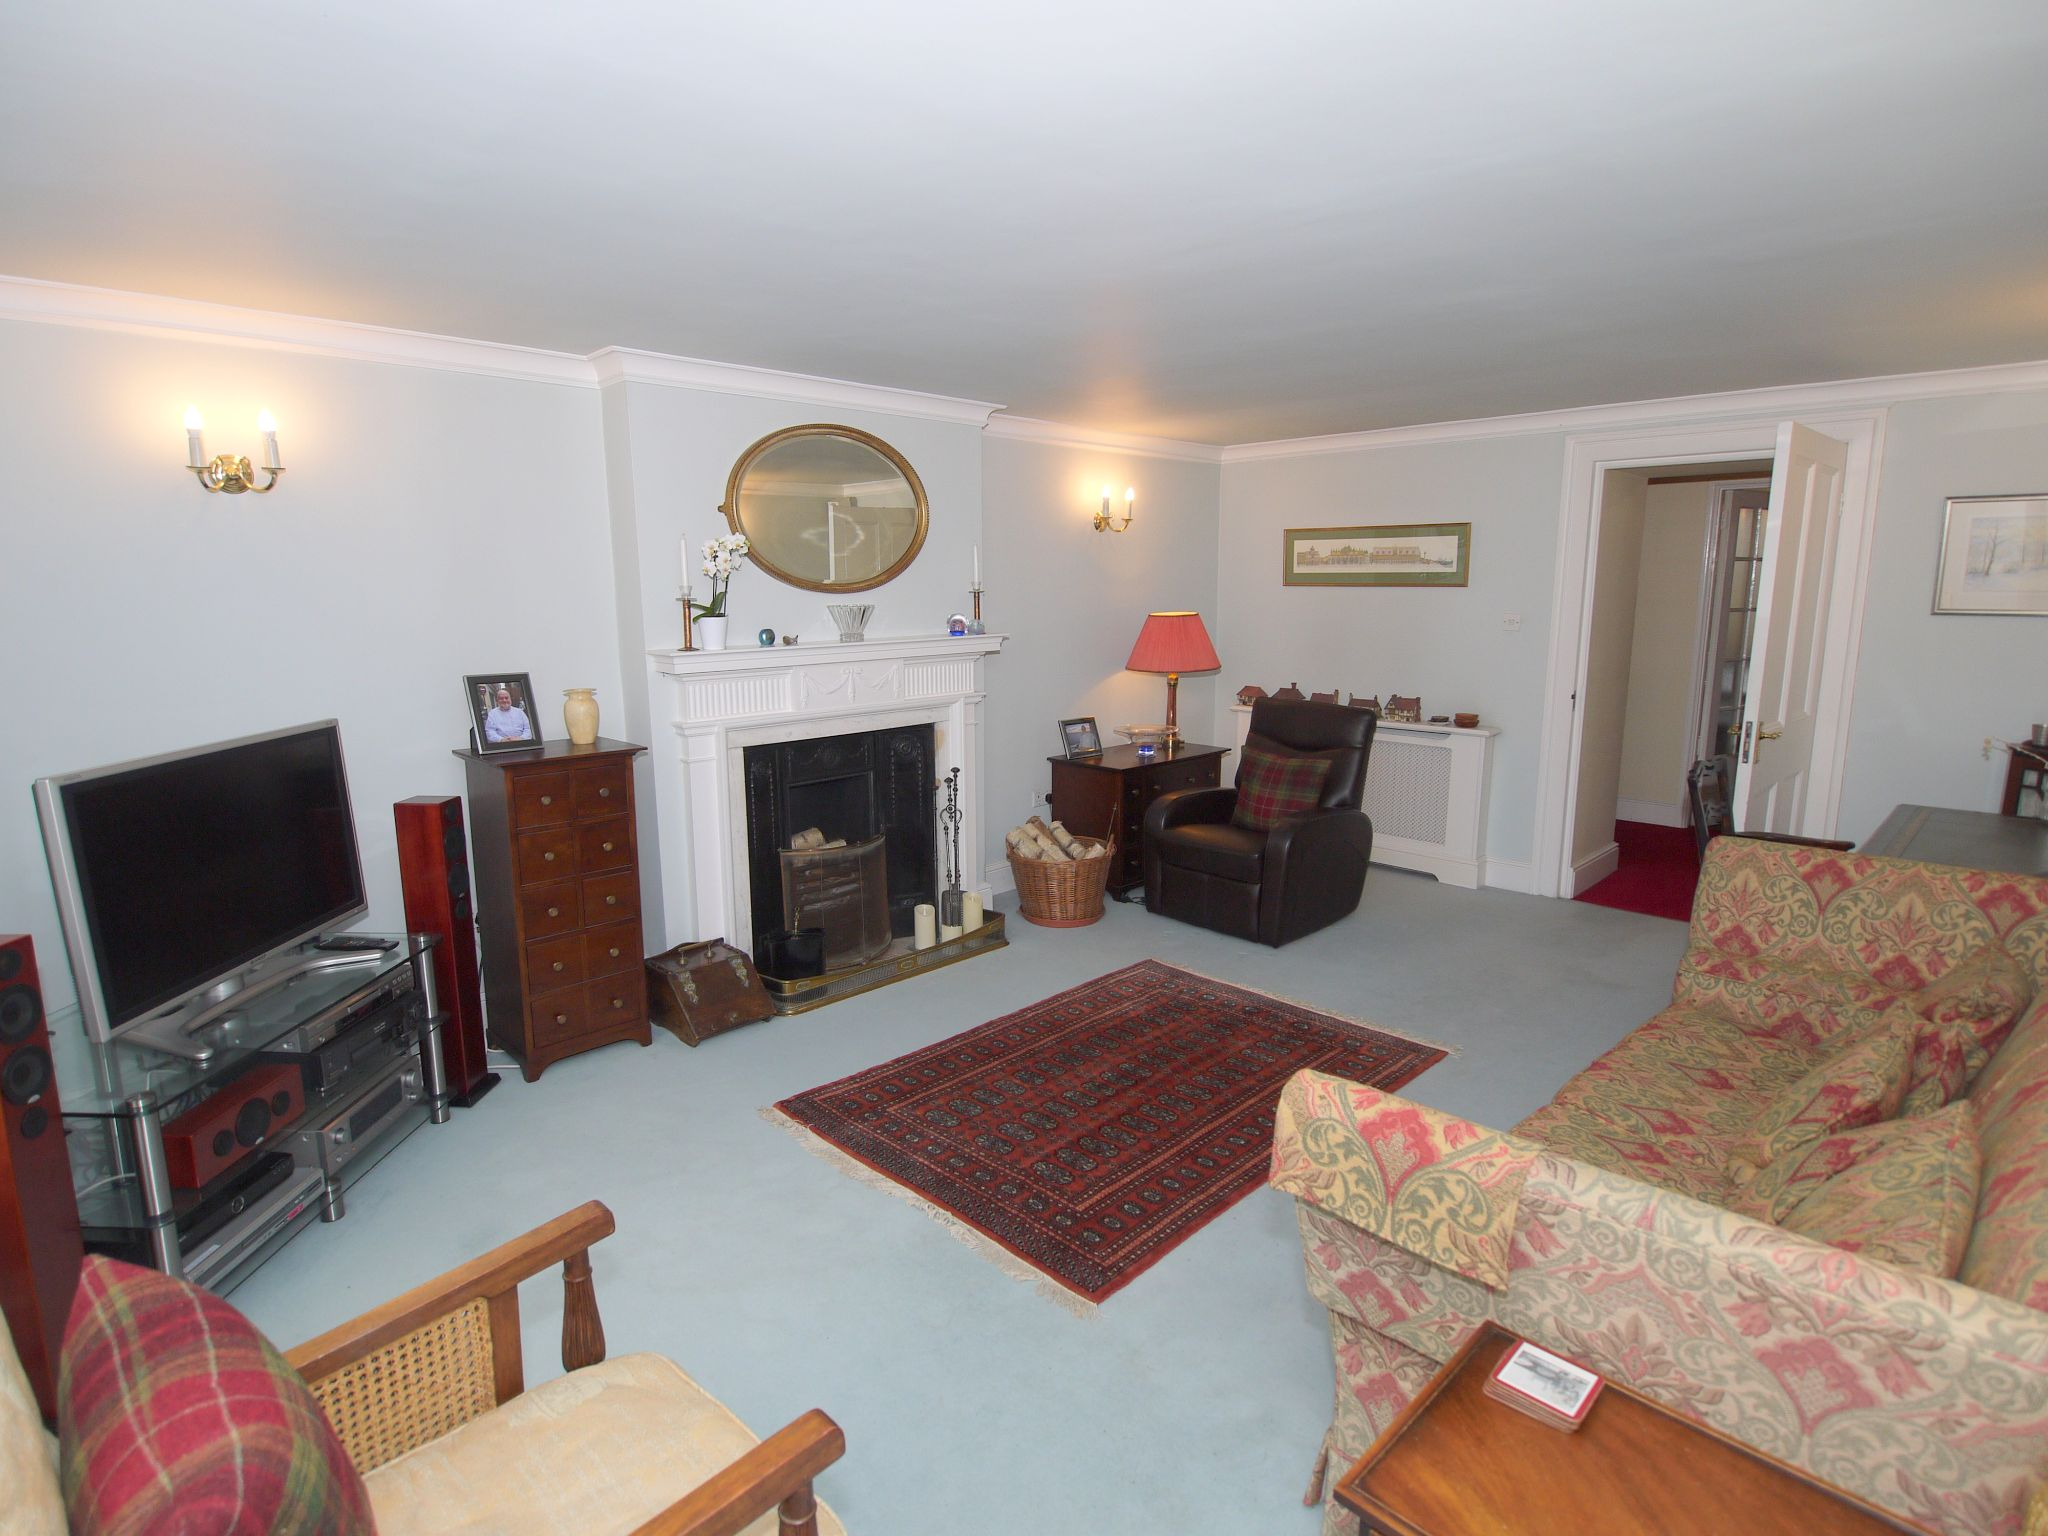 5 bedroom semi-detached house For Sale in Sundridge - Photograph 6